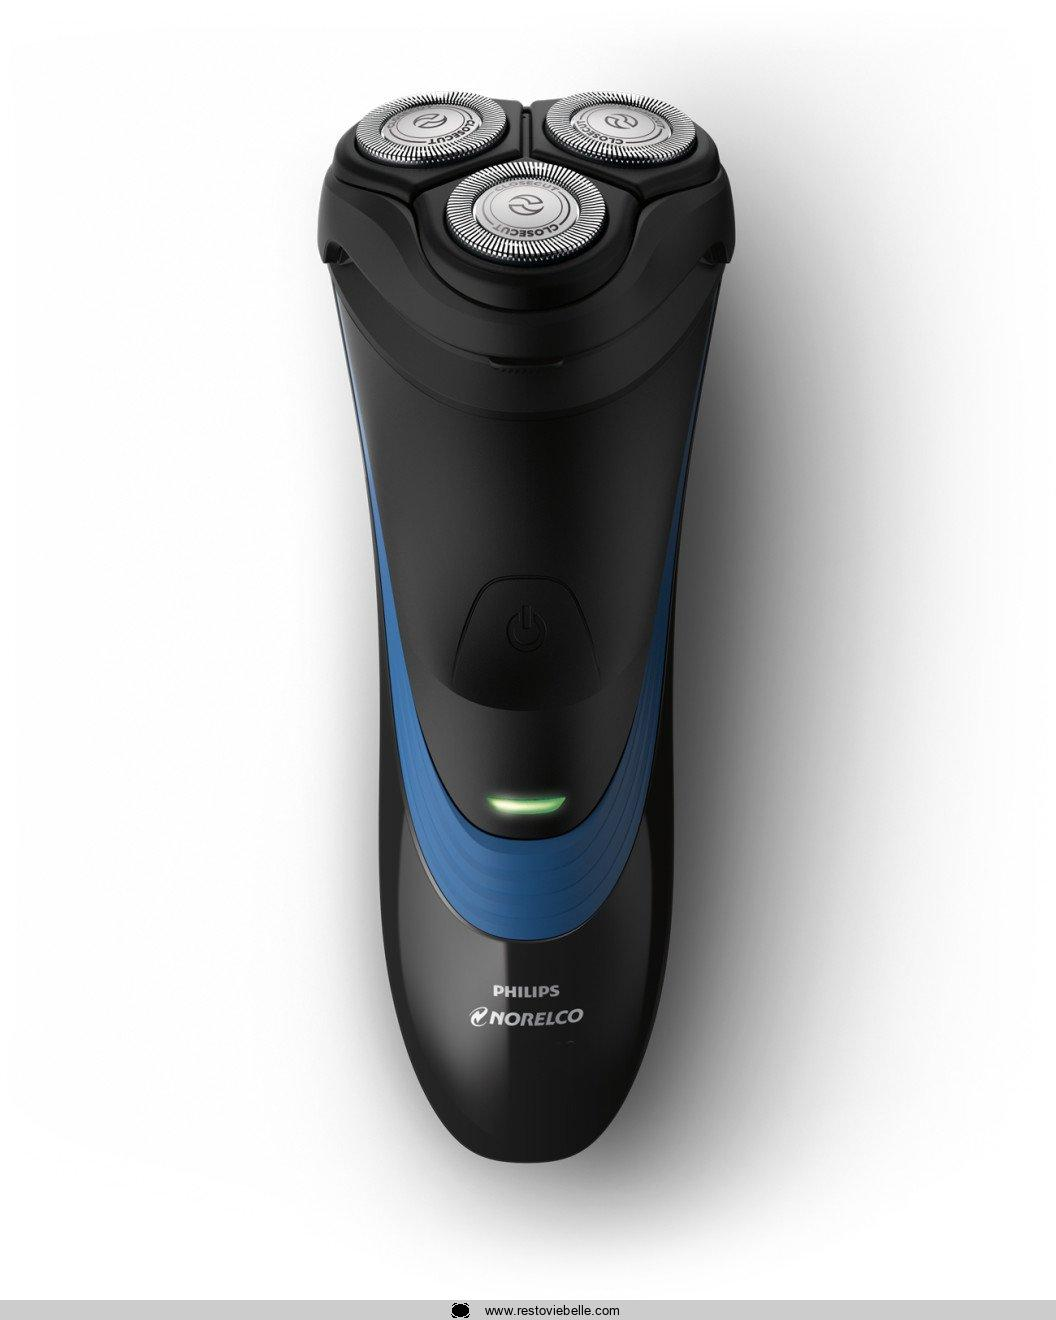 Philips Norelco Shaver 2100